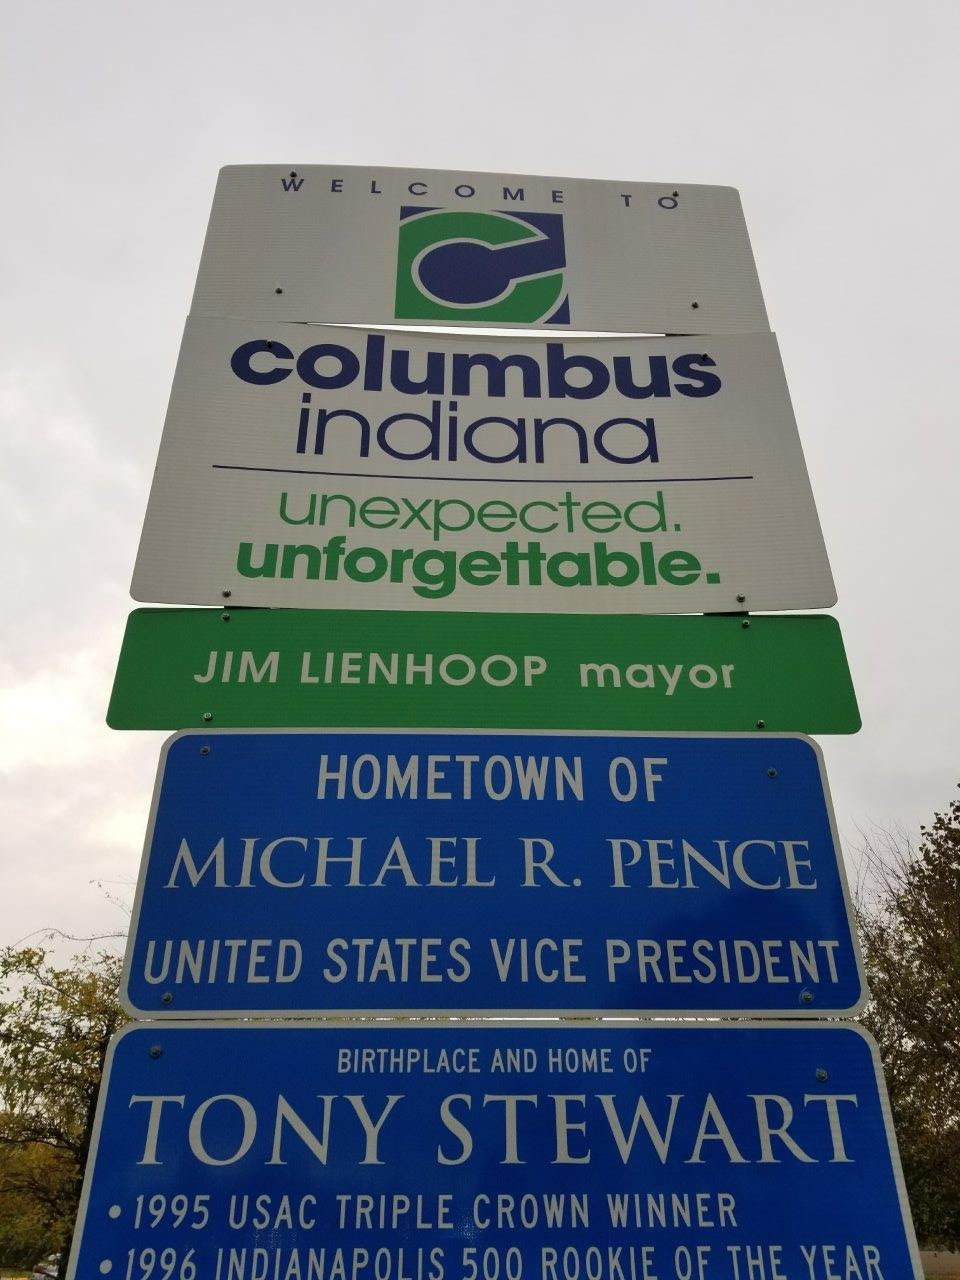 Columbus is the hometown of U.S. Vice President Mike Pence.